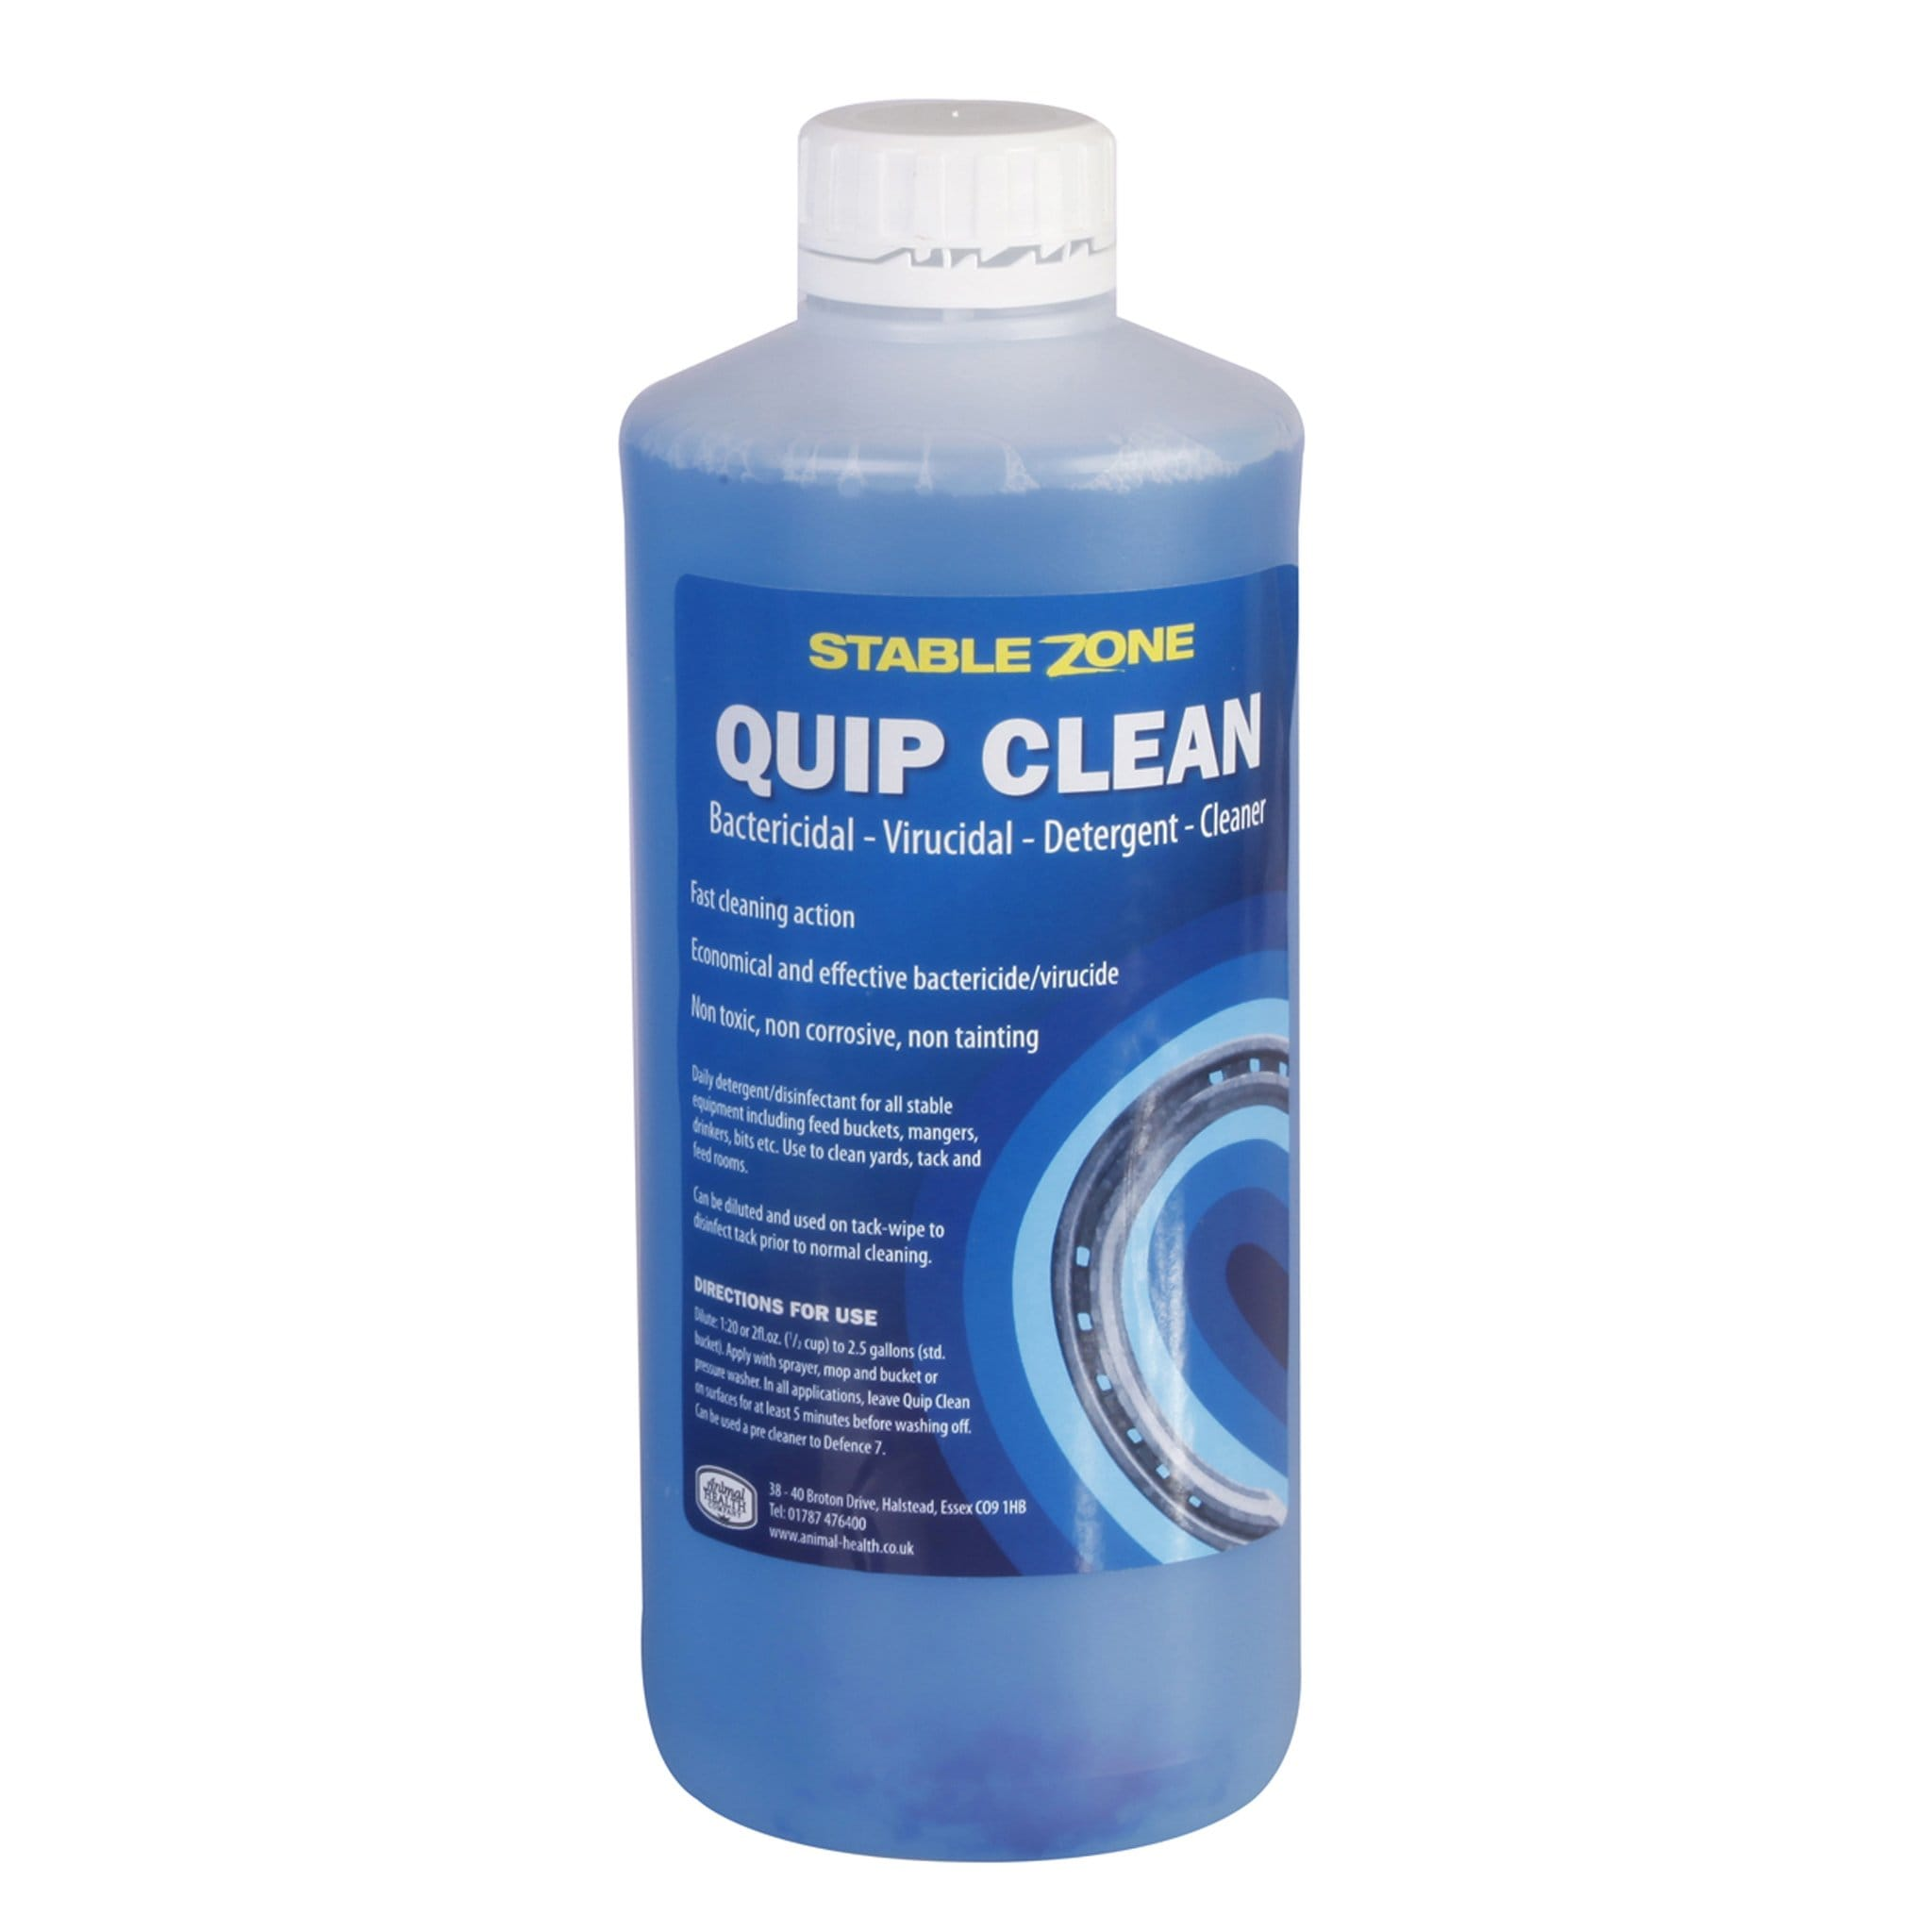 Animal Health Company Quip Clean SPE0026 1 litre